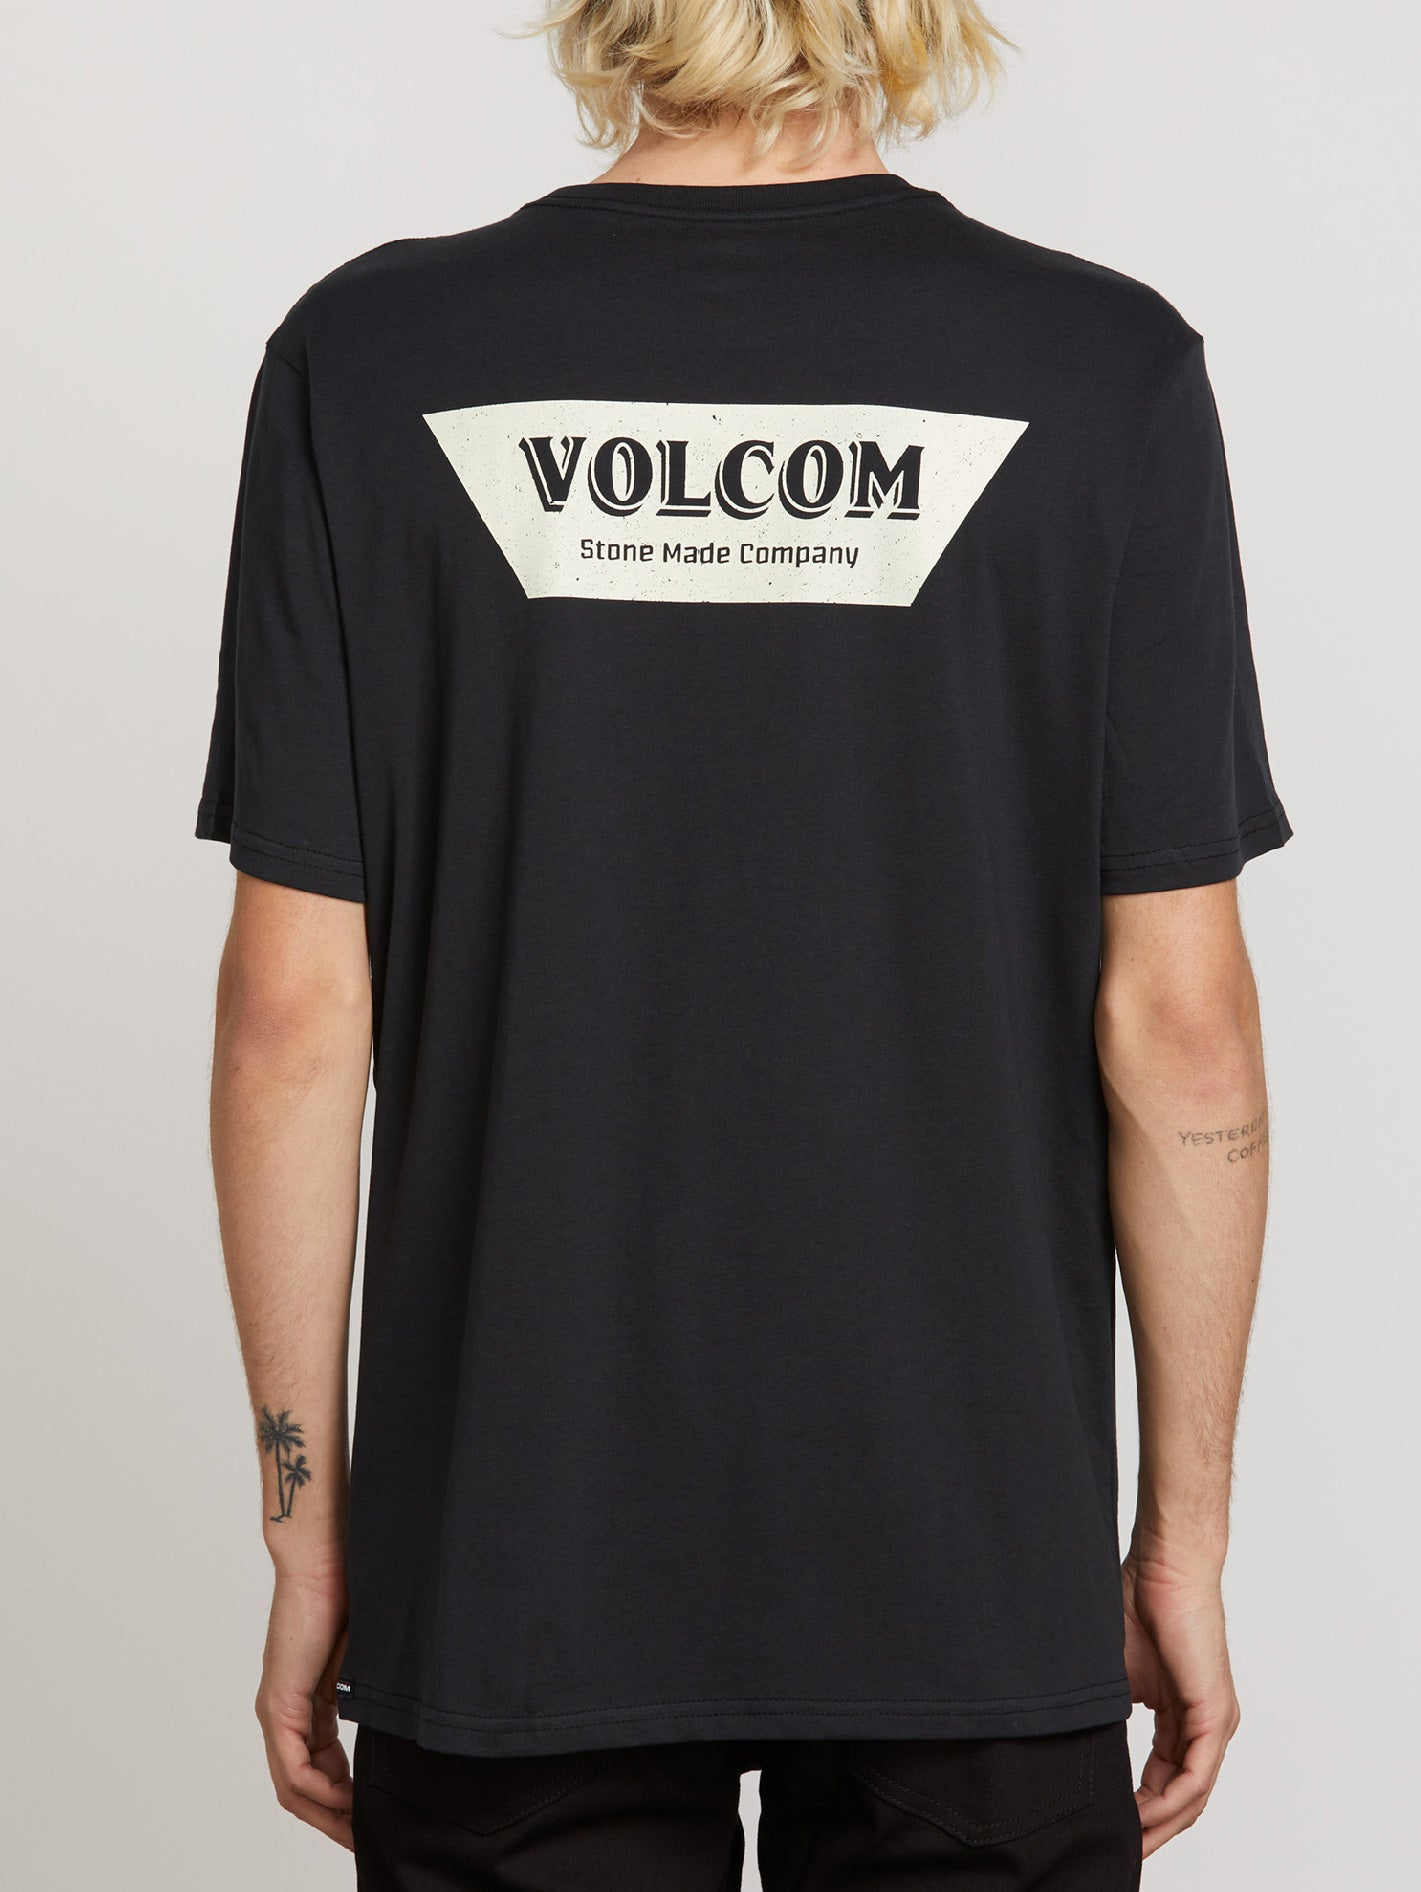 386ee200 Mens Baseball T Shirts | Graphic Raglan Tees for Men | Volcom ...